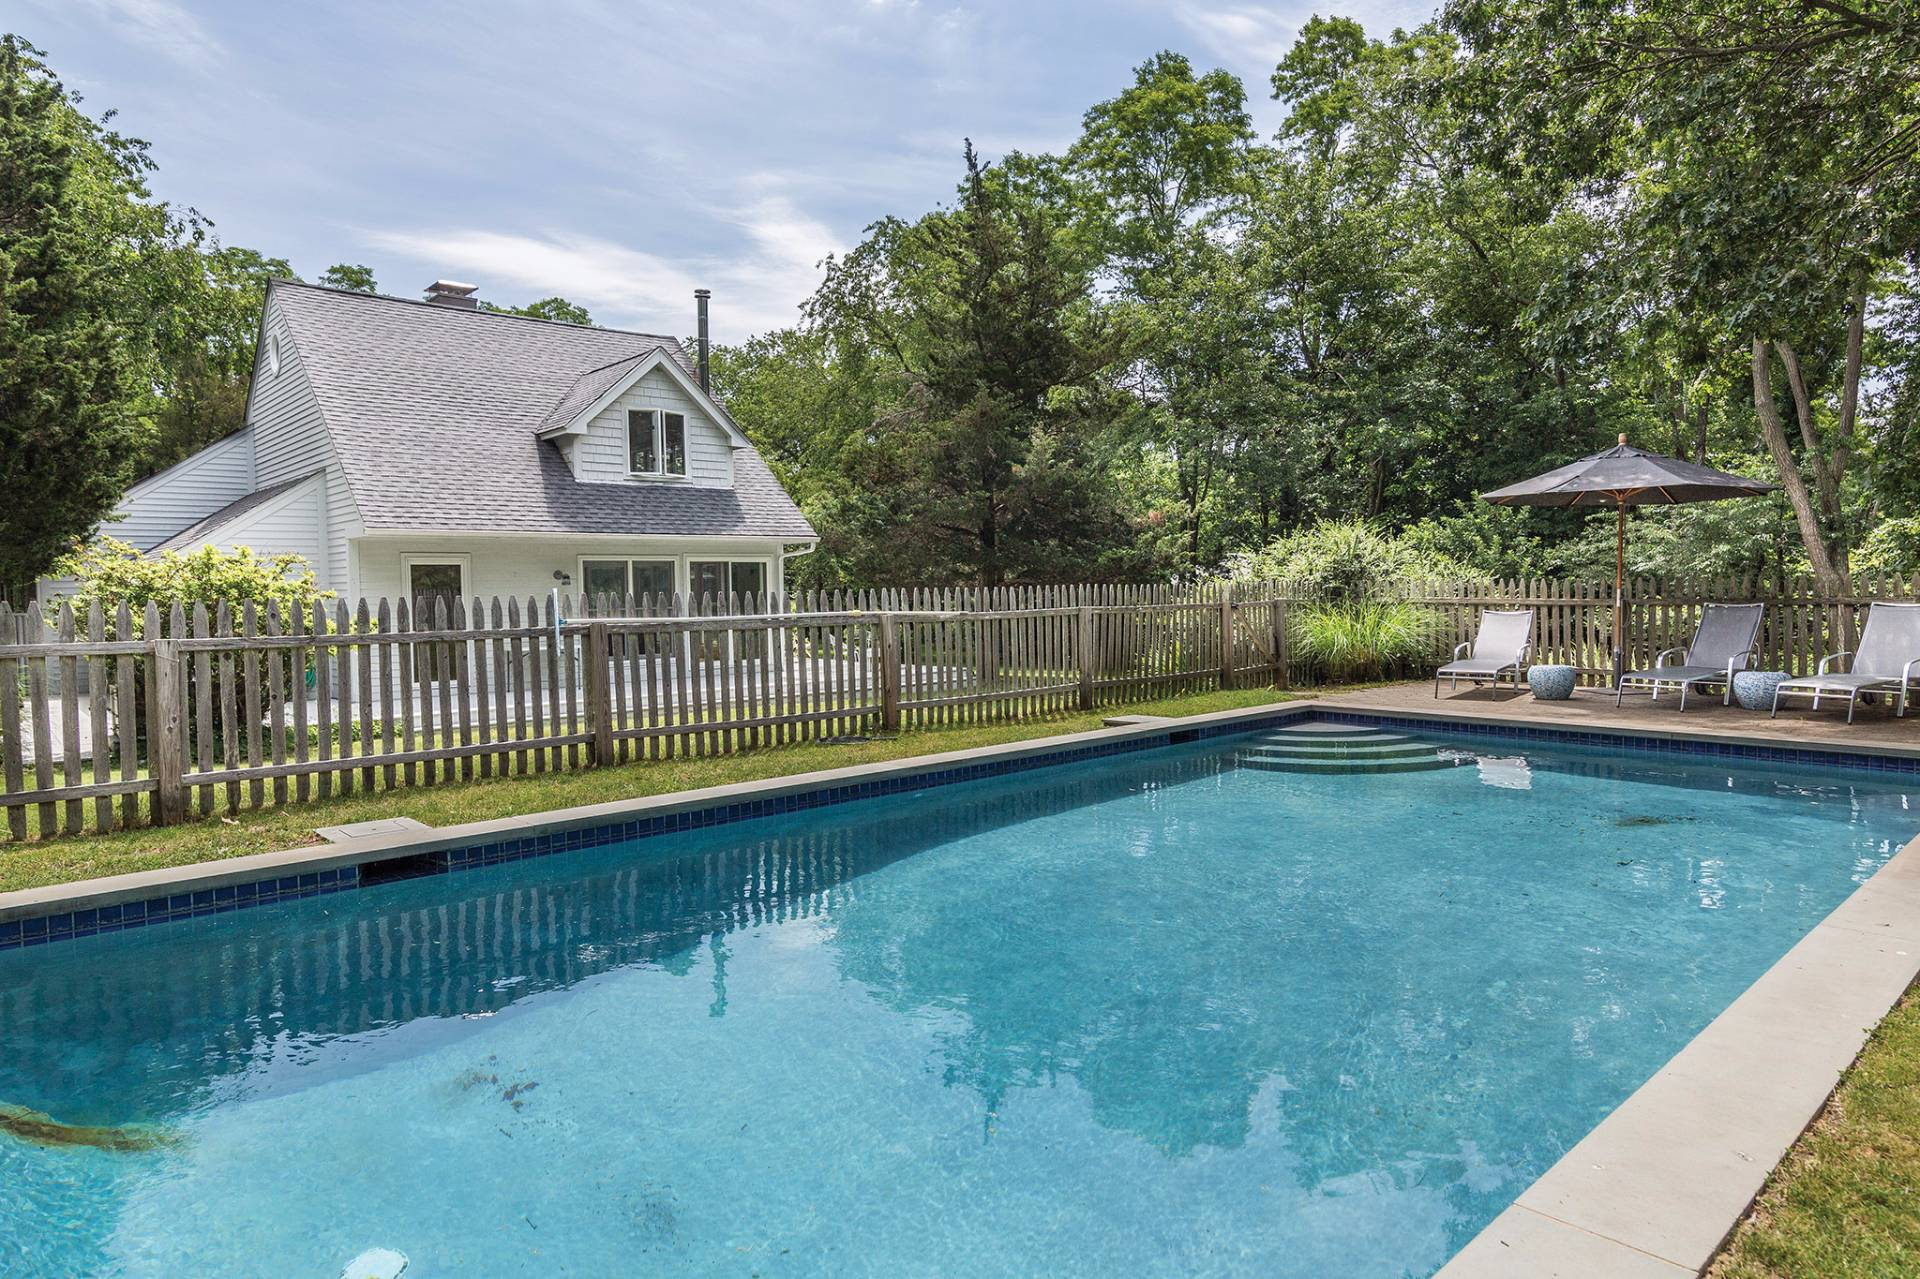 Single Family Home for Sale at Shelter Island European Country Modern With Pool 30 Baldwin Road, Shelter Island, New York